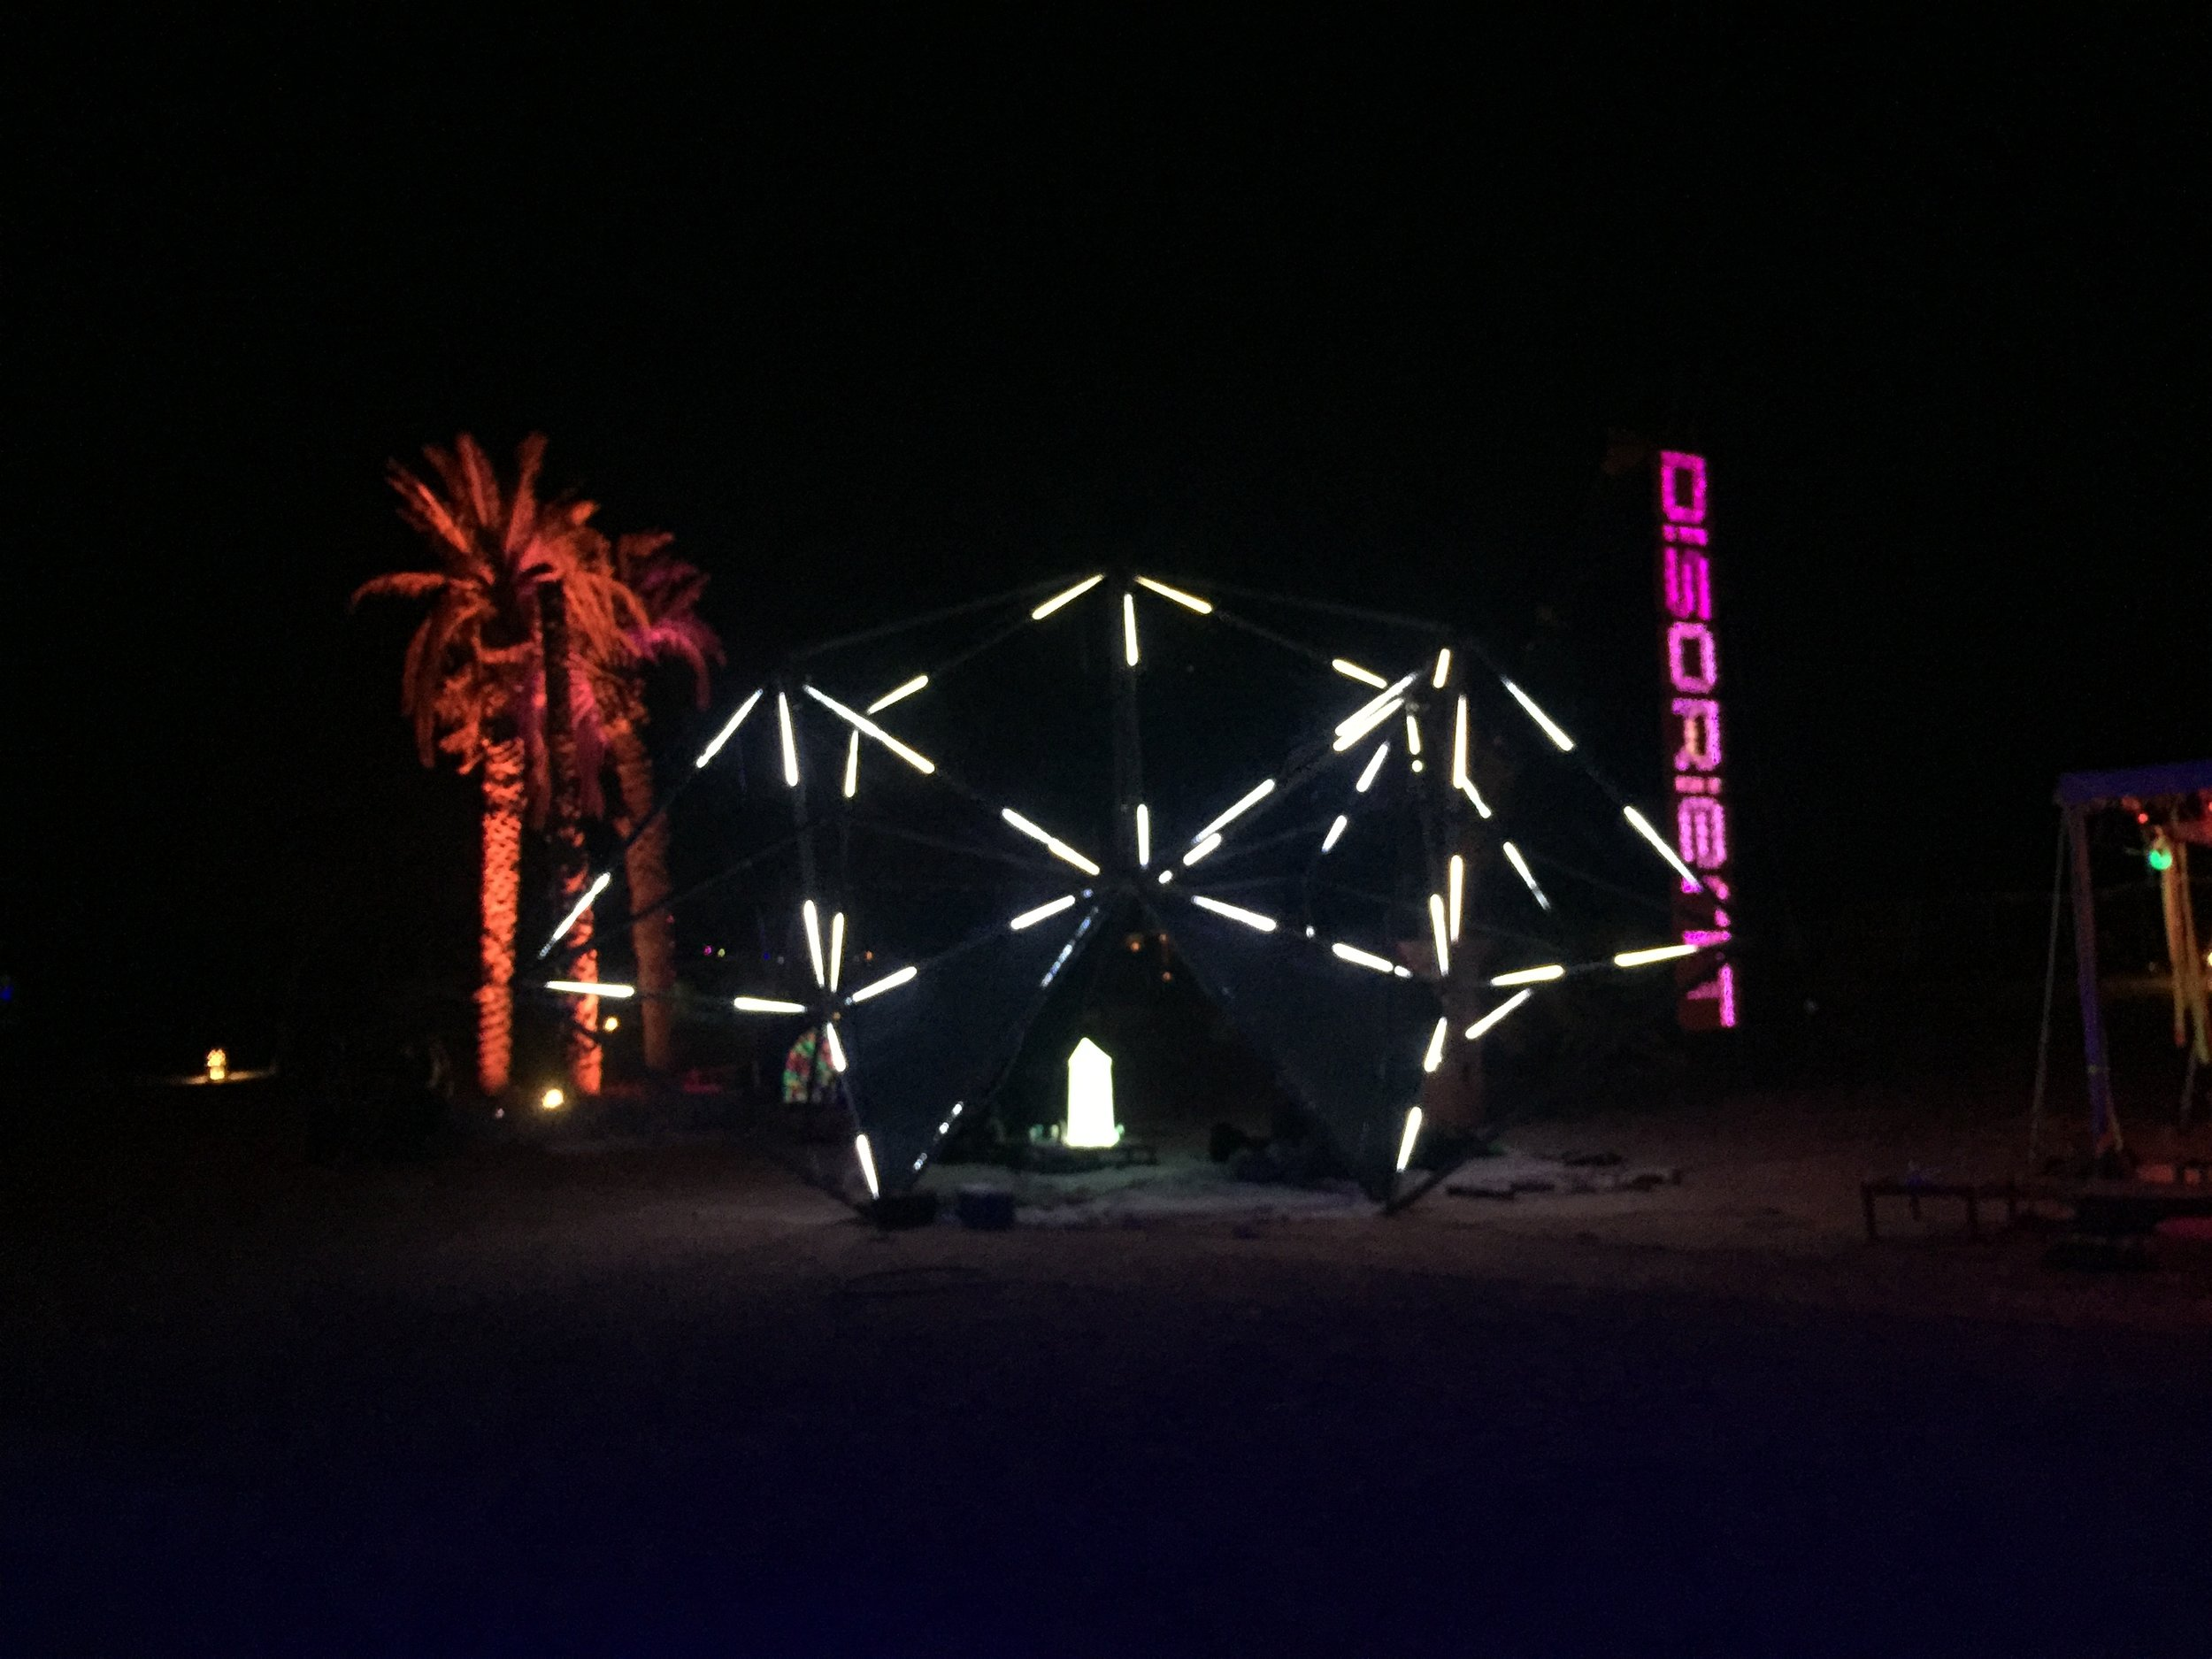 Bedouin Tech   Burning Man community arts and music festival.   Dubai, UAE.   Feb, 2017.